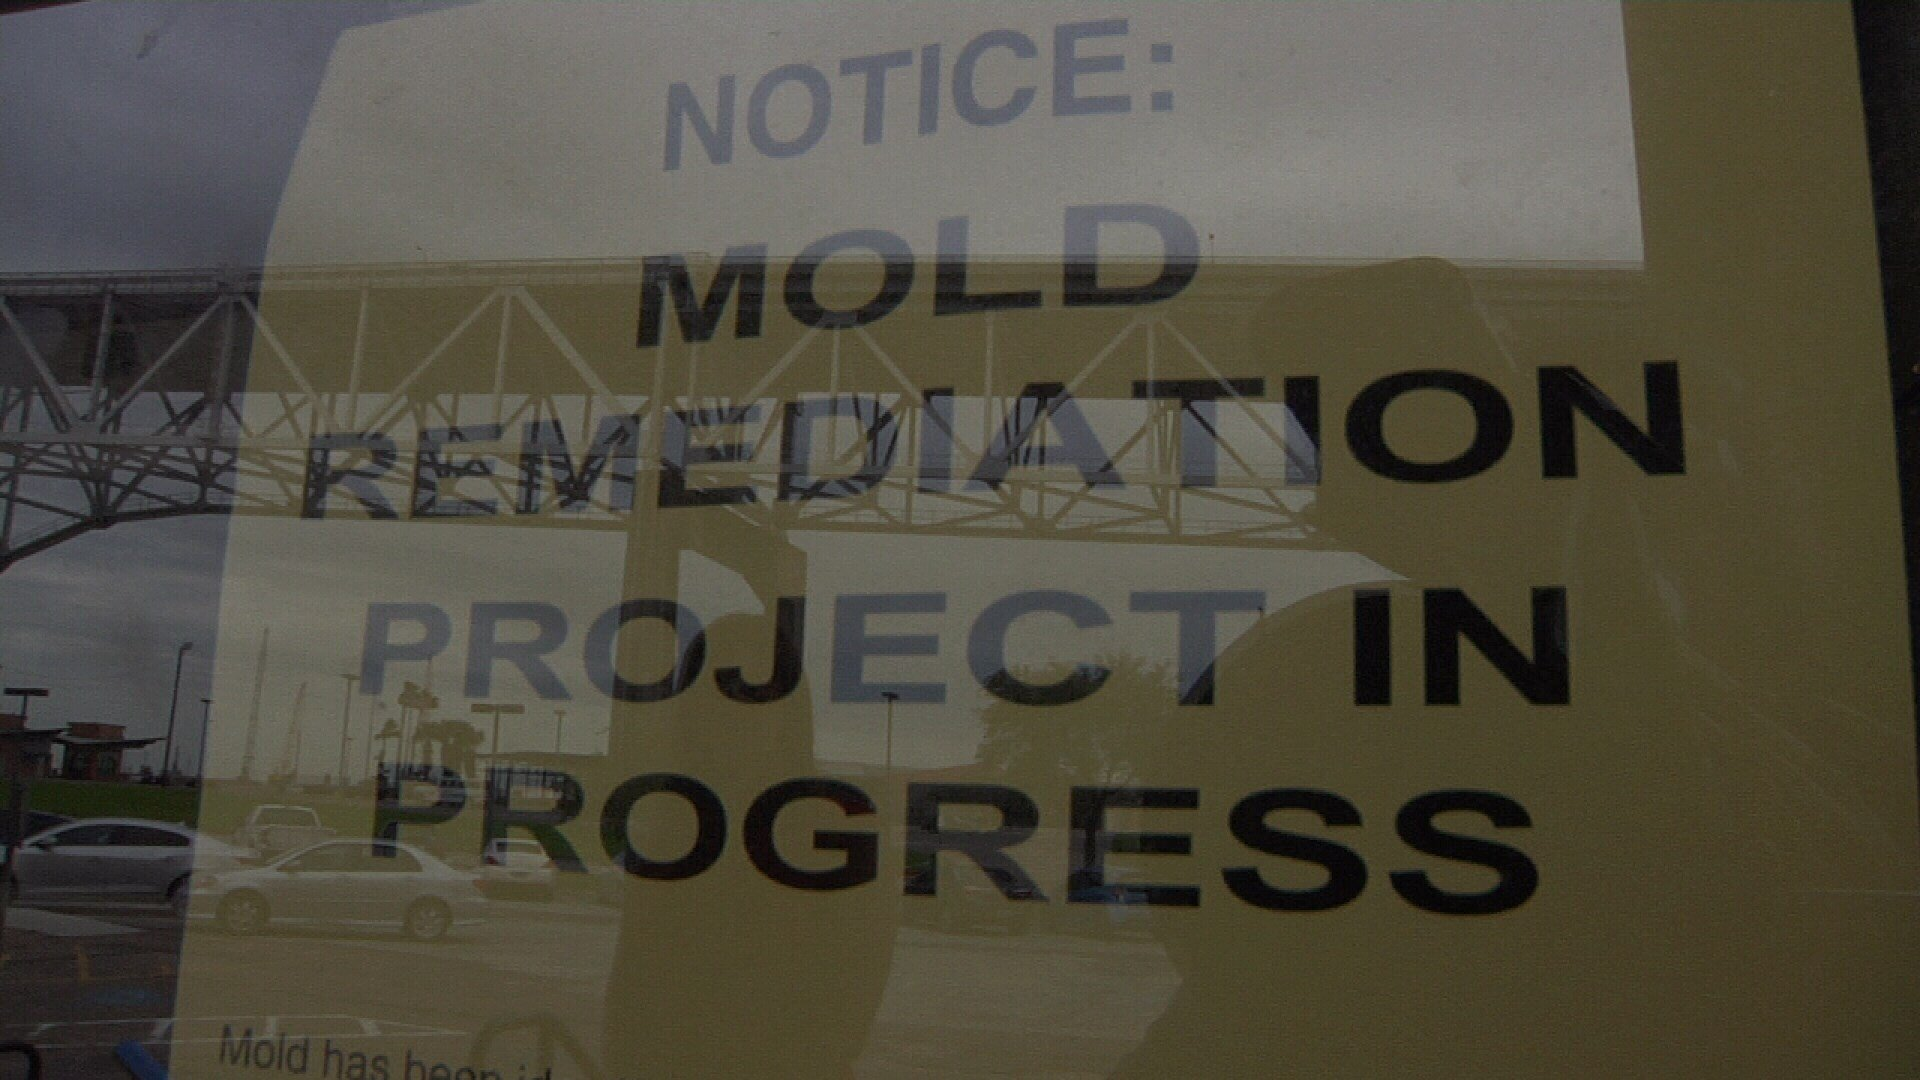 Mold remediation is in progress and city officials say more mold was found in the building this week.